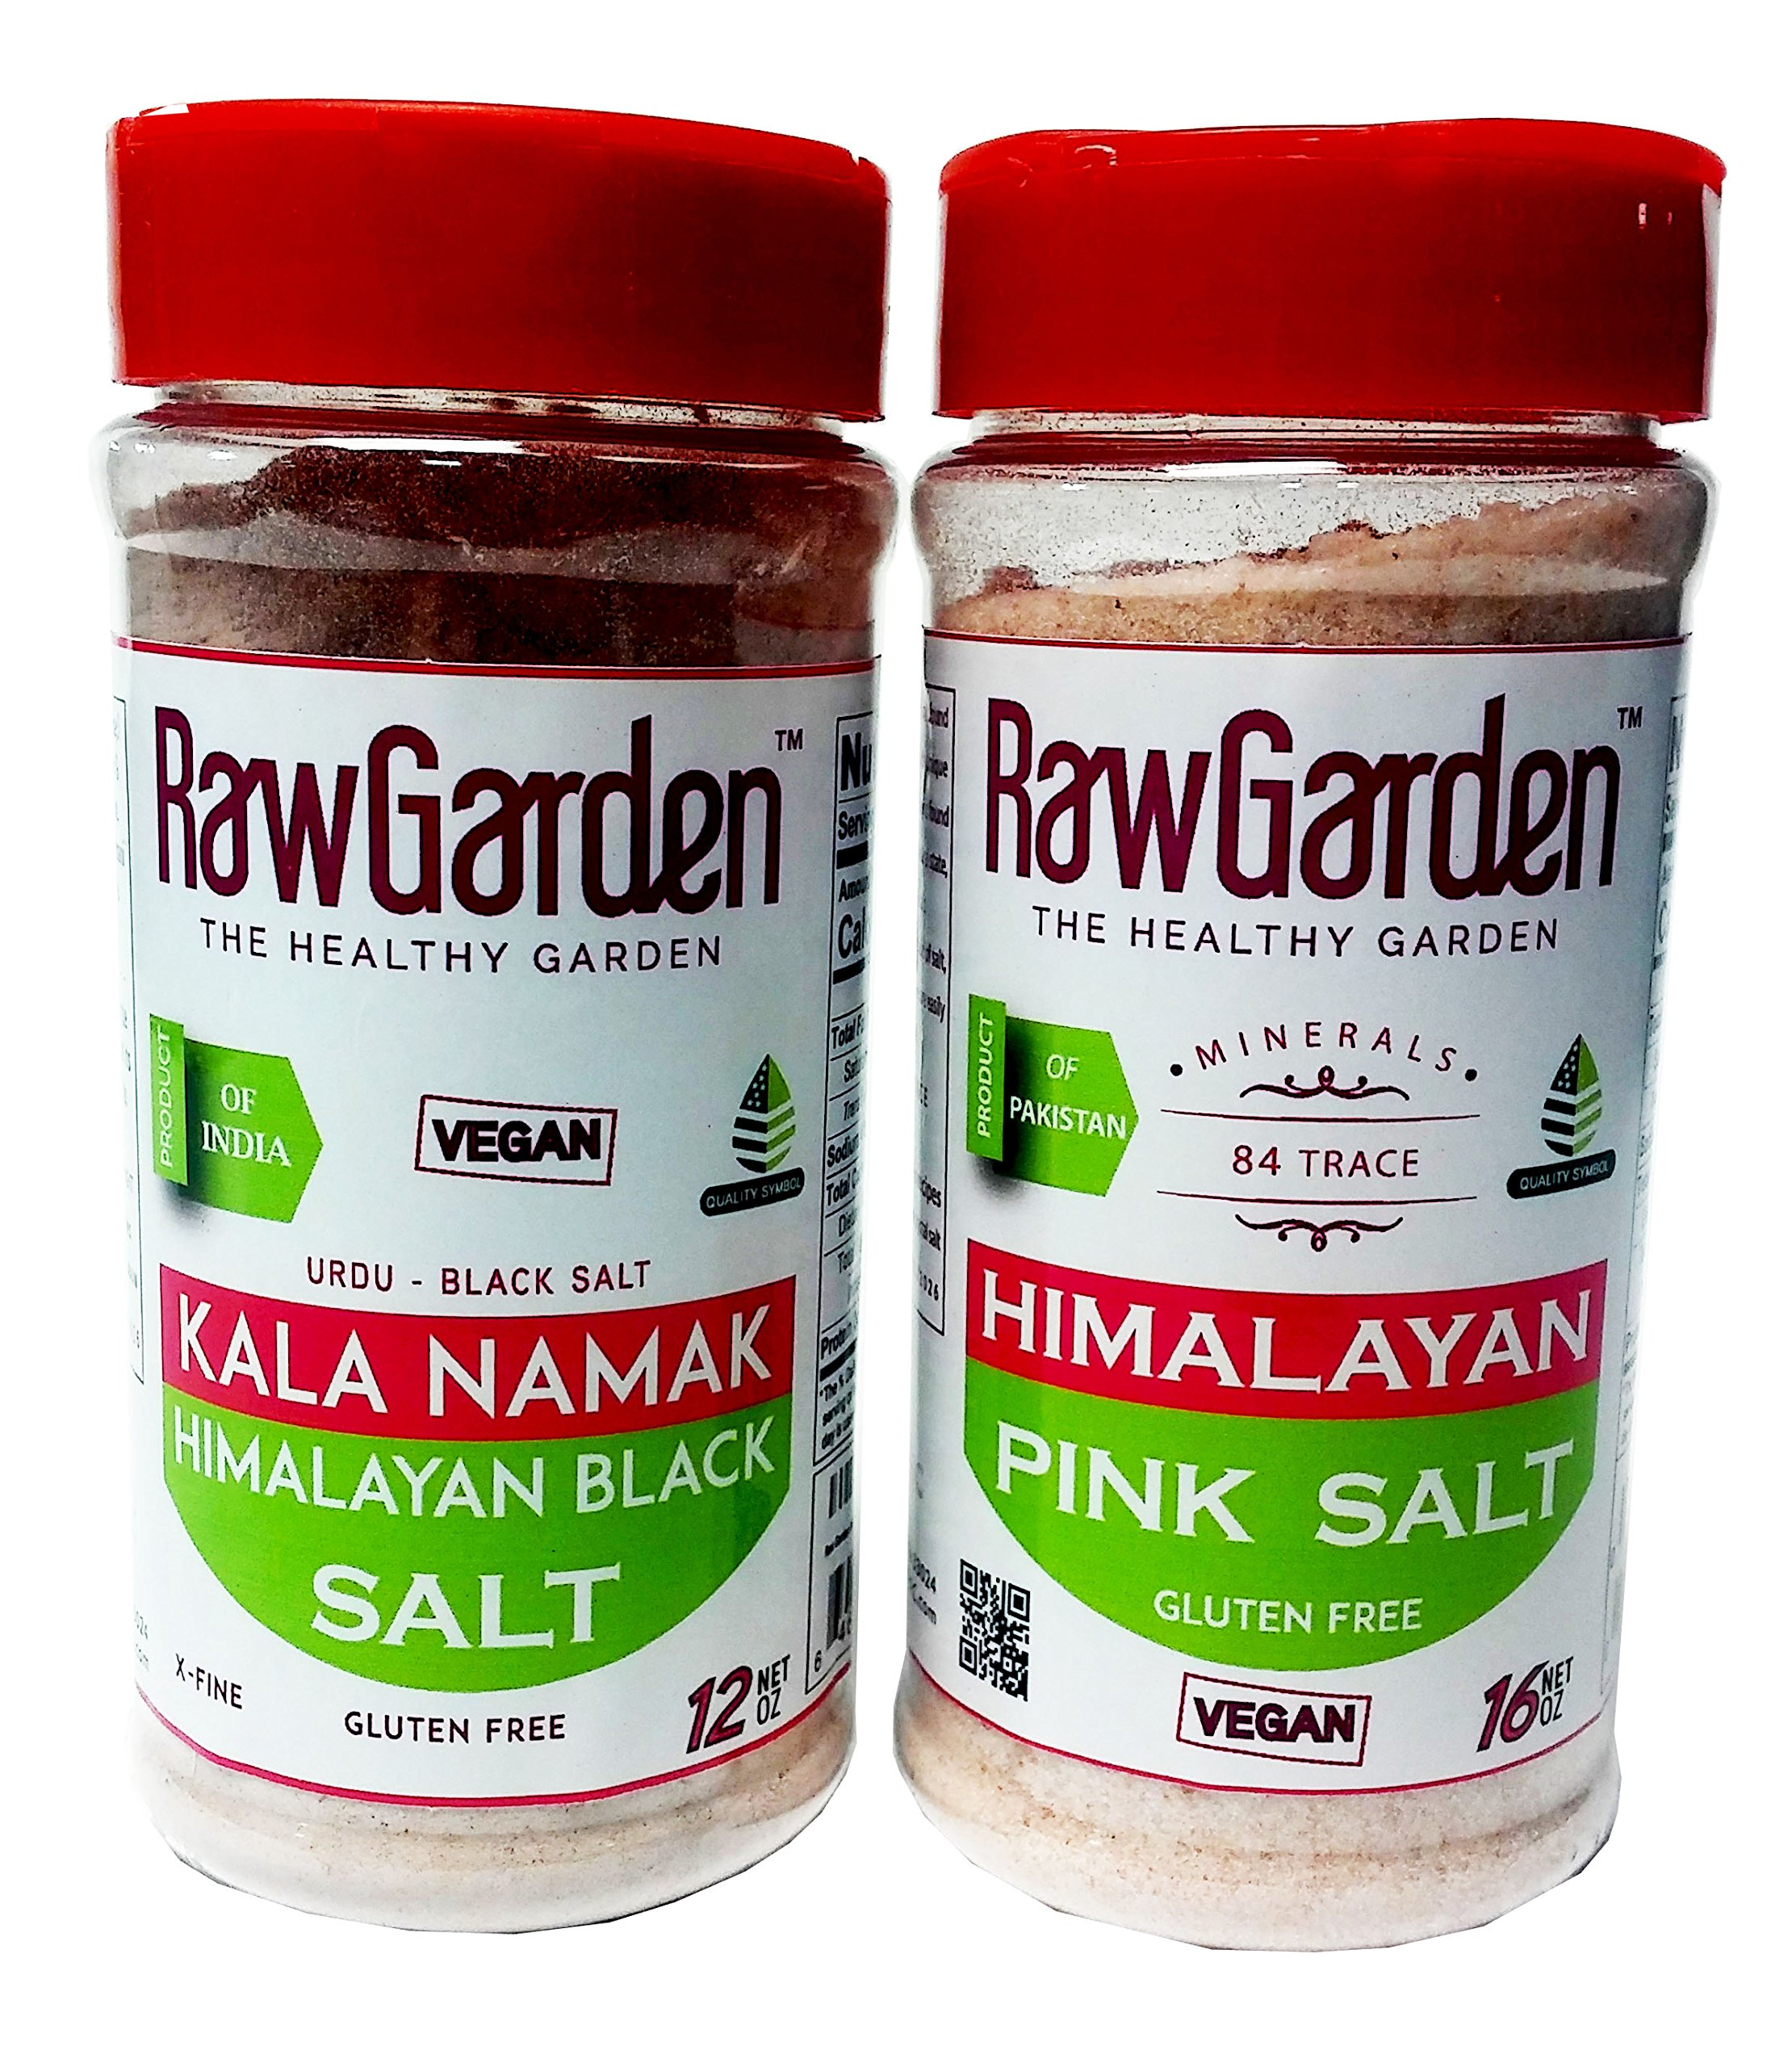 Raw Garden Kala Namak (Himalayan Black Salt) Fine 1 lb, 2 Pack Easy-To-Use Shaker Bottles